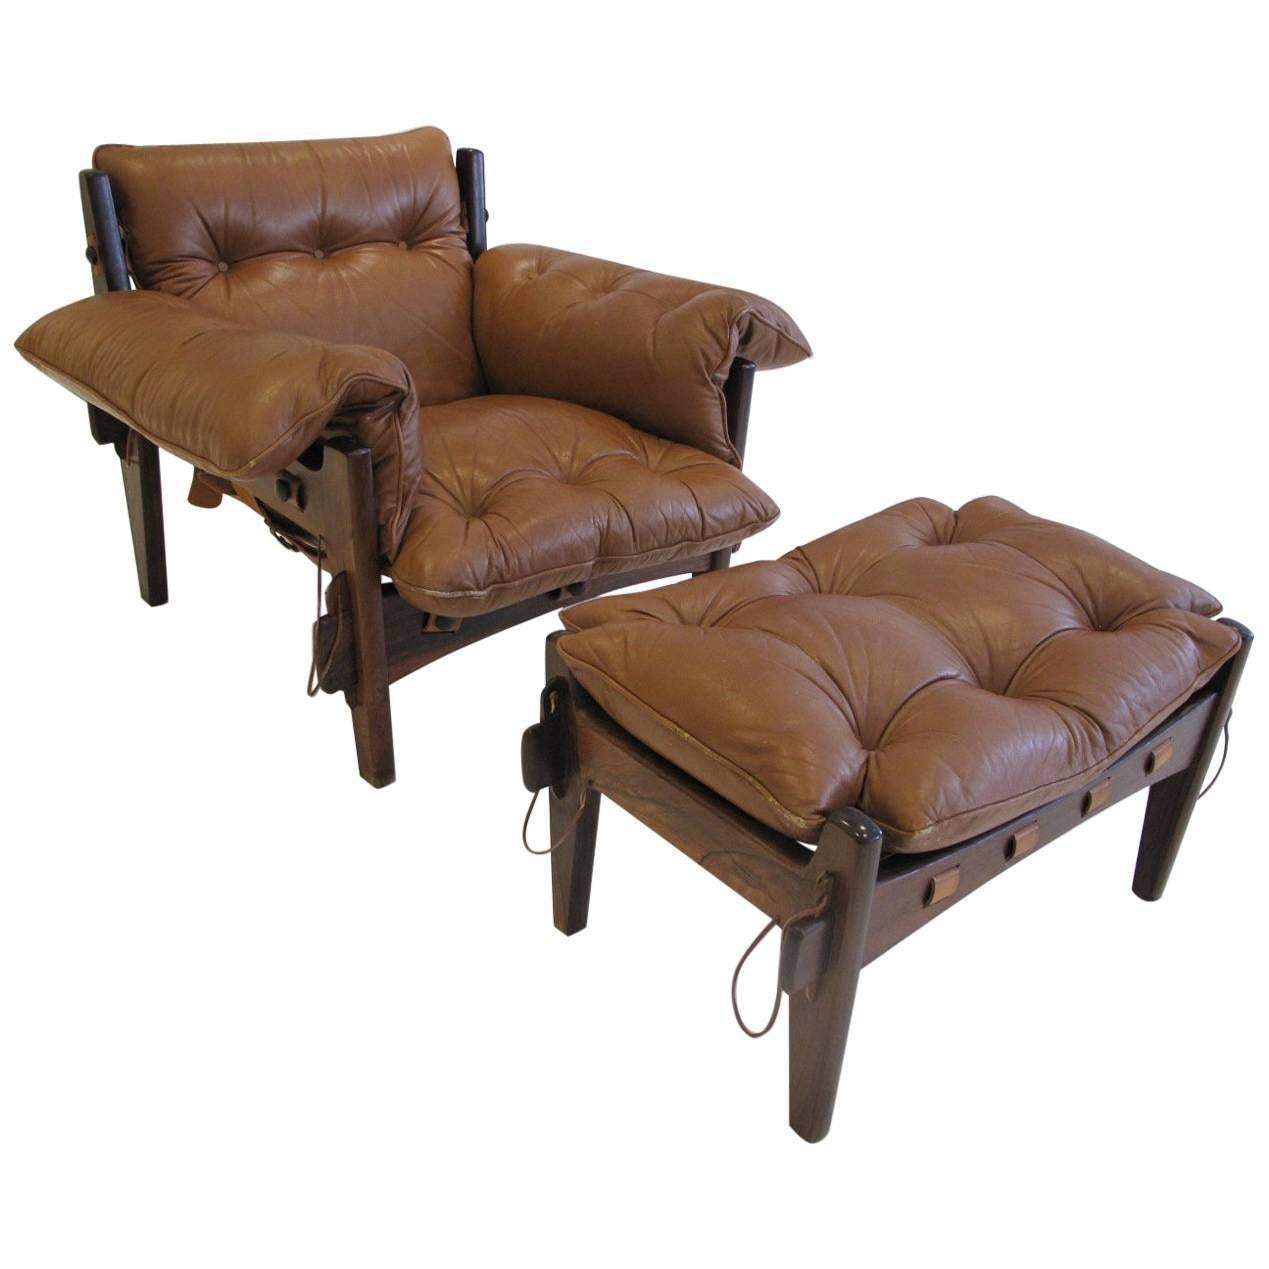 Great Rosewood and Leather u0026quot;Mischievousu0026quot; Chair and Ottoman by Sergio Rodrigues  sc 1 st  1stDibs & Sergio Rodrigues Furniture: Mole u0026 Sheriff Chairs Sofas u0026 More ...